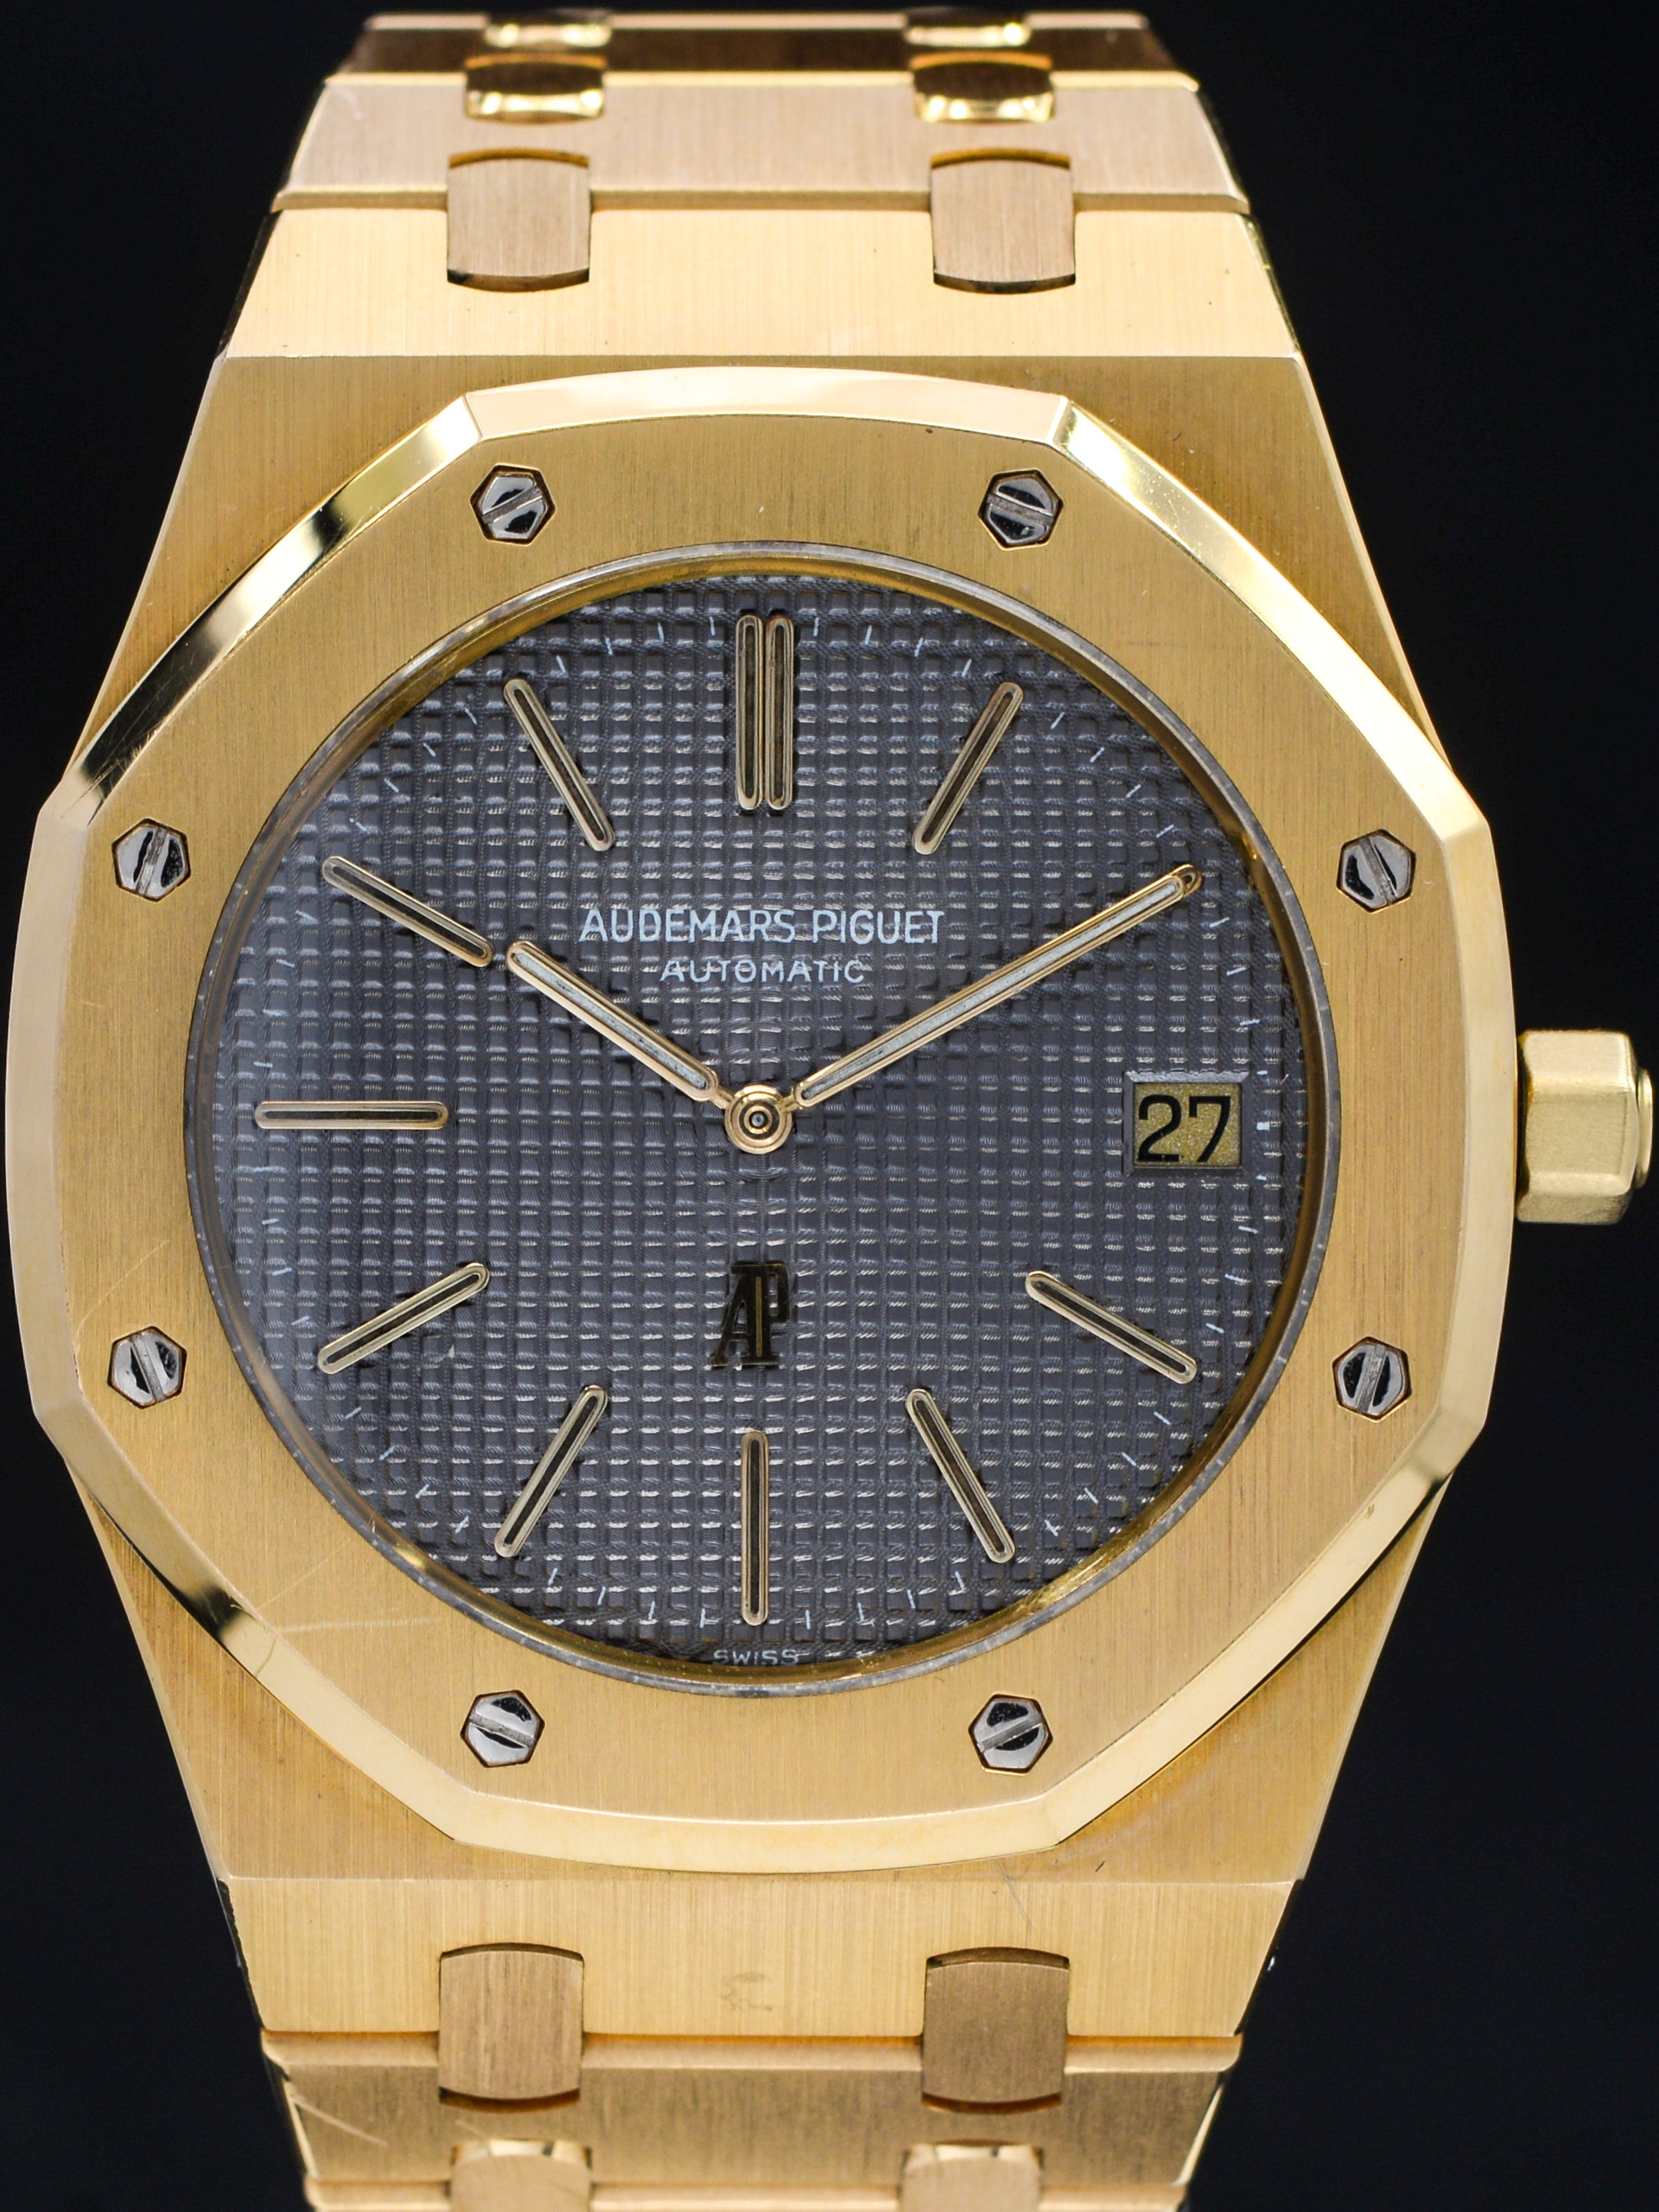 "Audemars Piguet Royal Oak 18K YG (Ref 5402) ""A Series"" Unpolished"